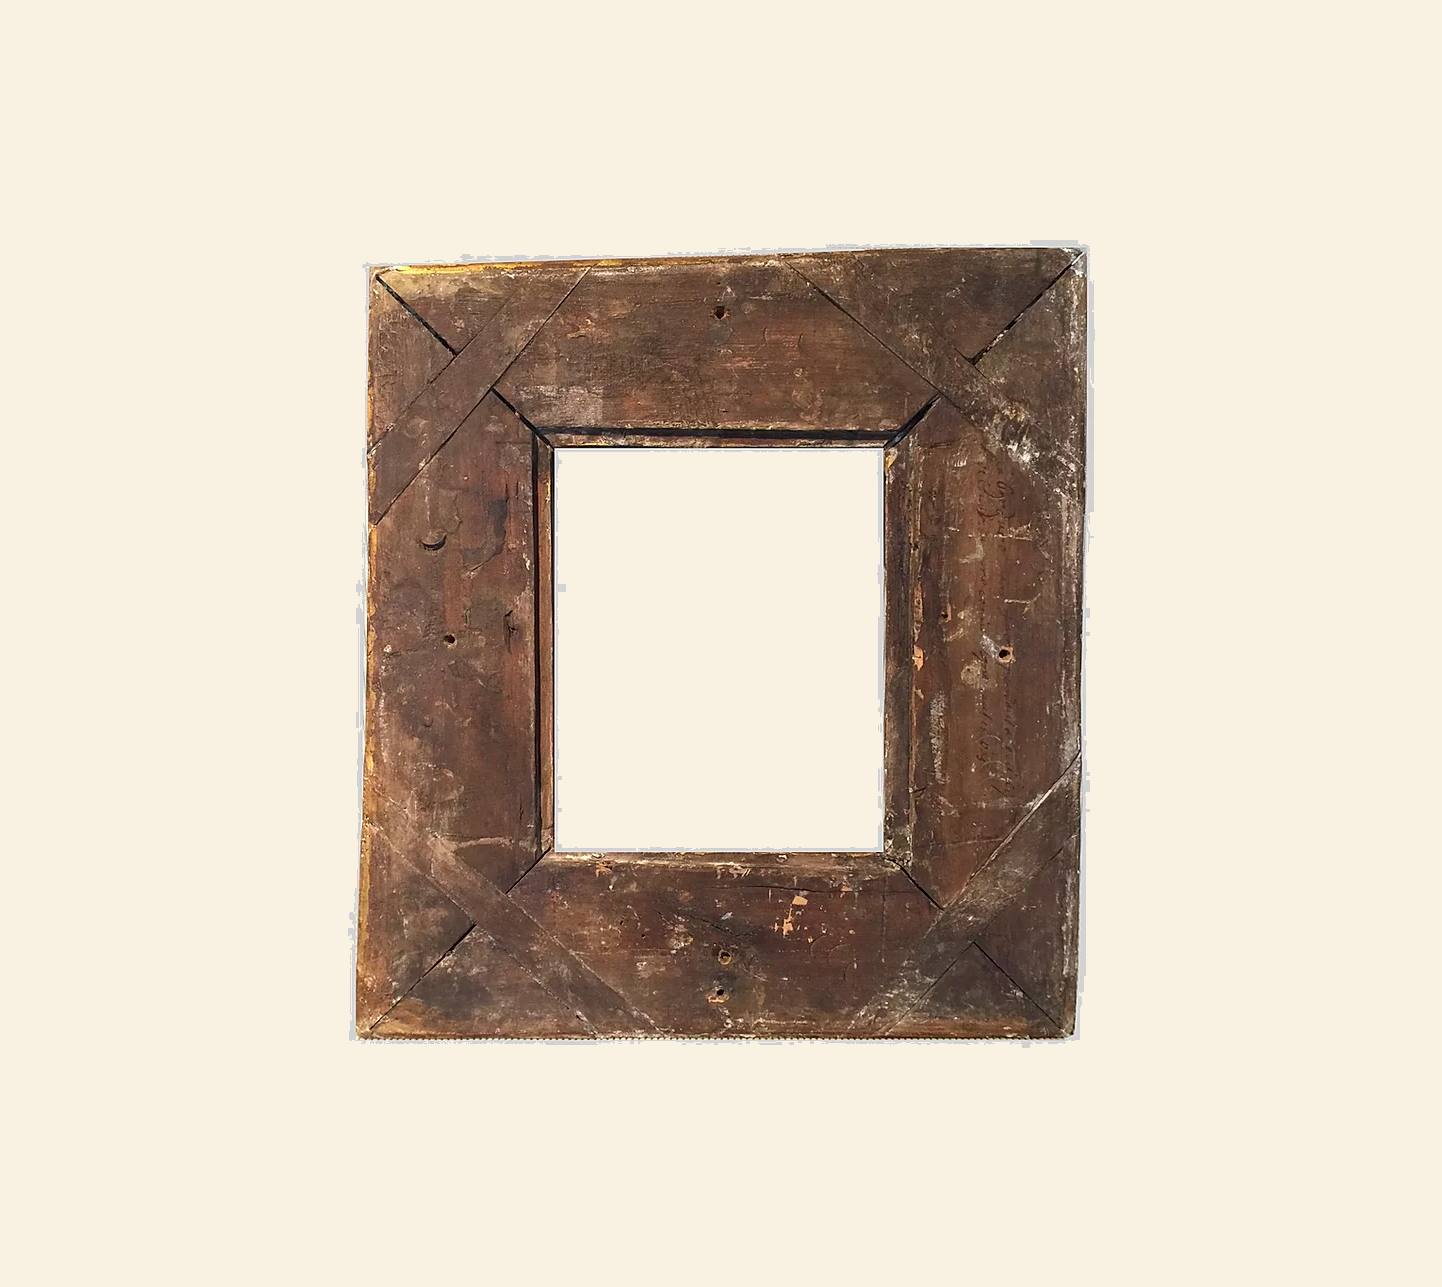 How to Inspect an Antique Frame